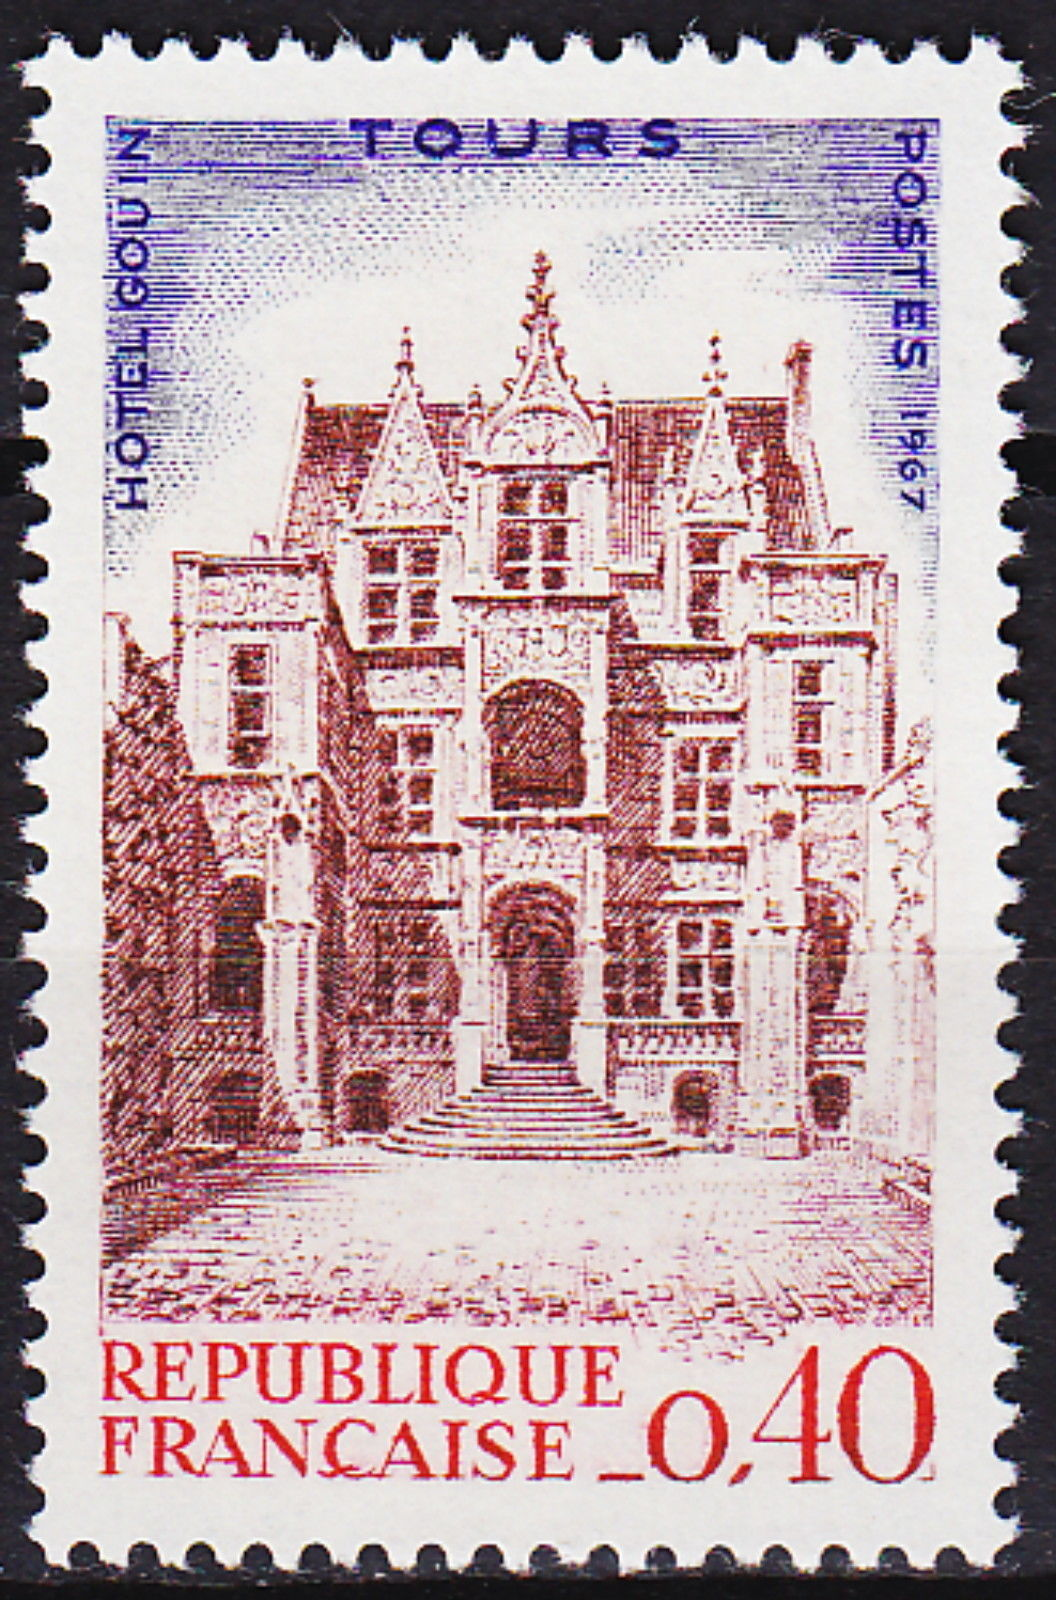 France 1967 Congress of the Federation of French Philatelic Societies